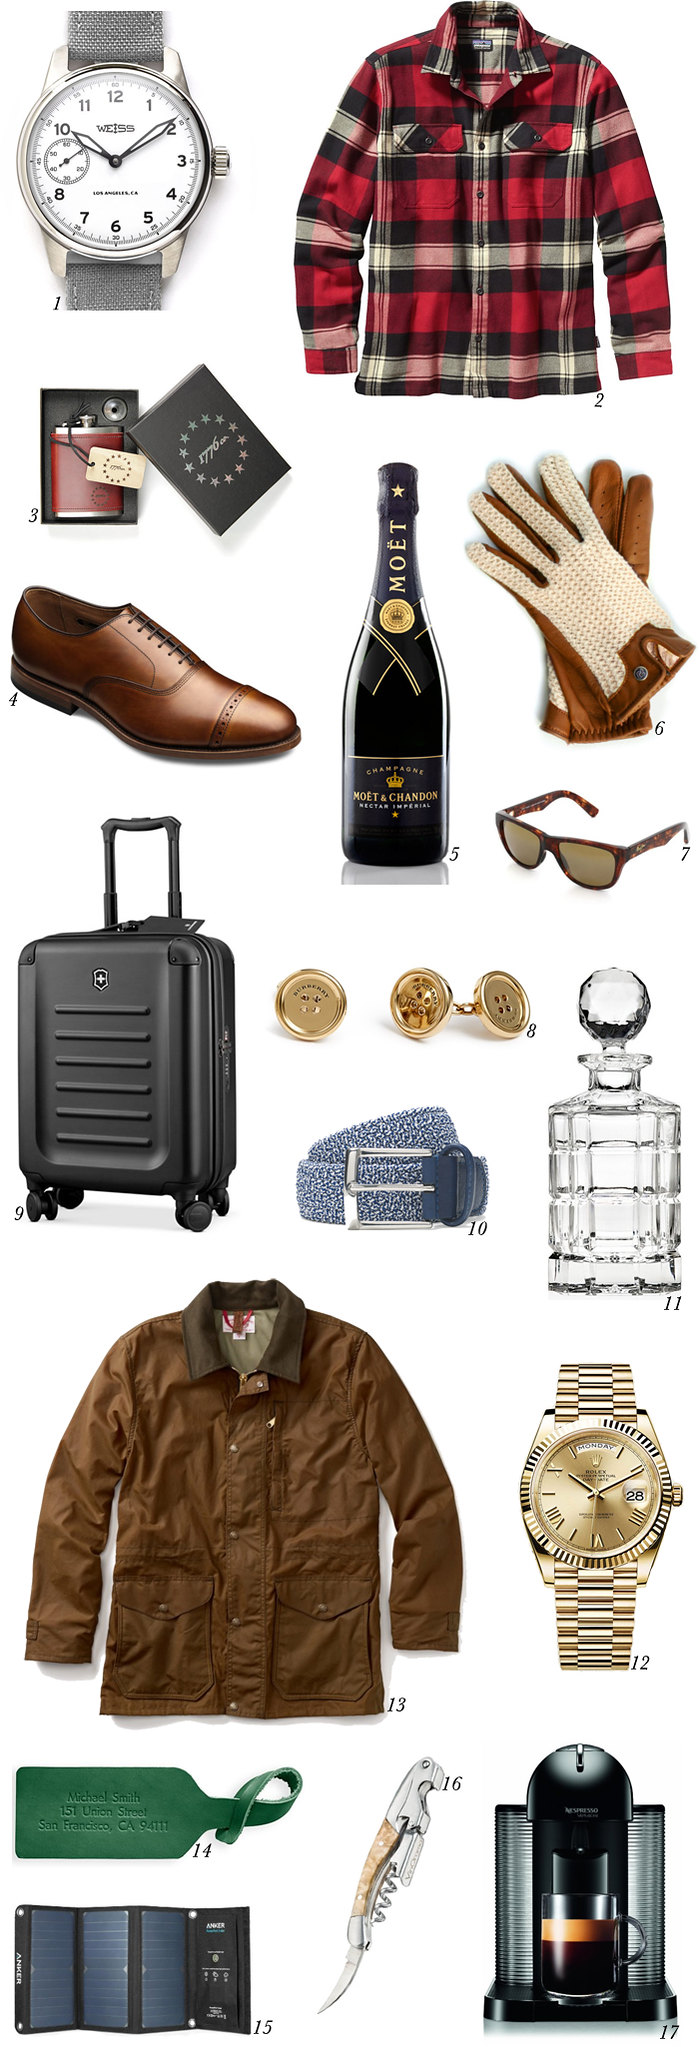 2015 holiday wish list men